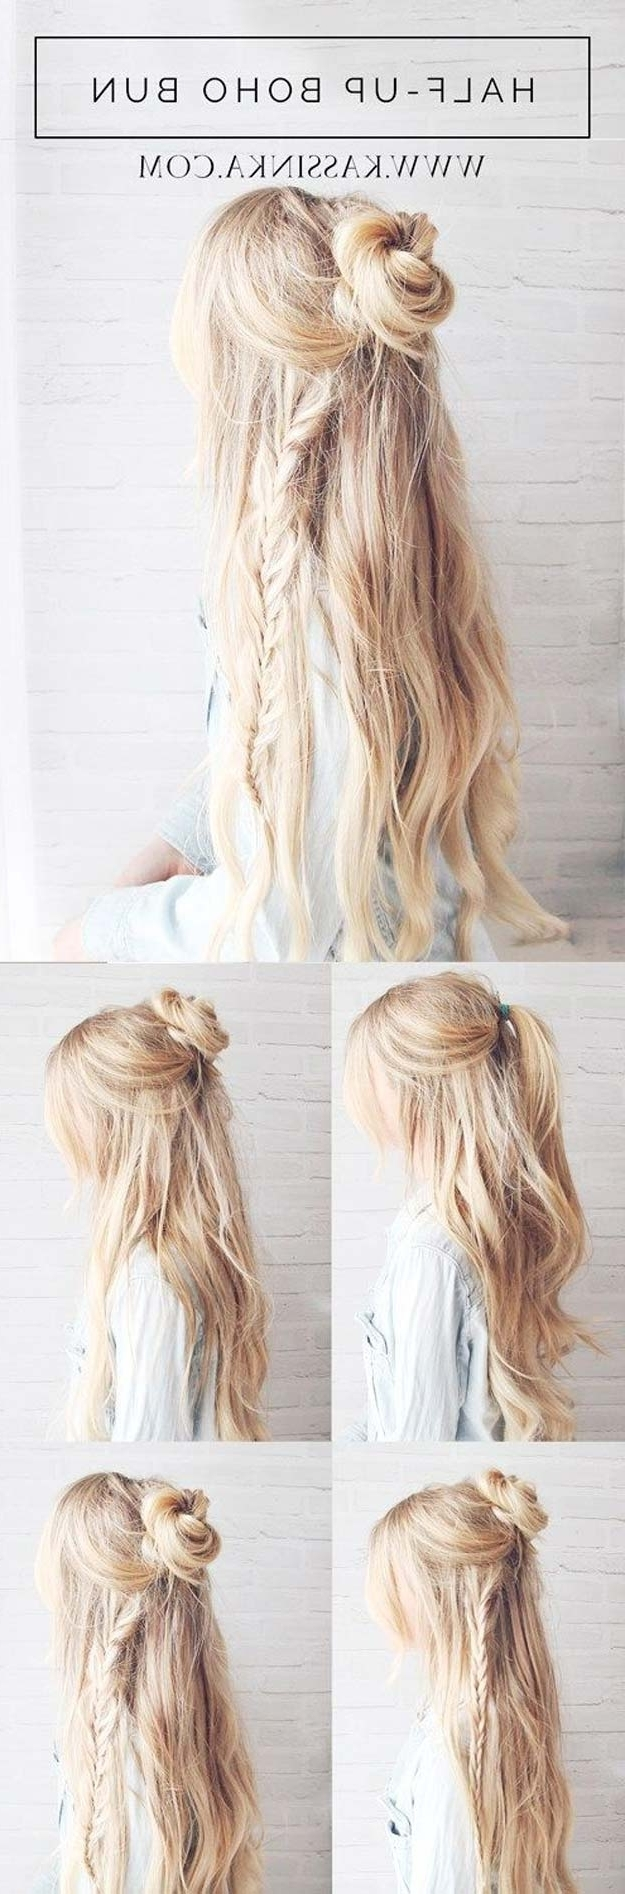 36 Best Hairstyles For Long Hair Throughout Diy Updo Hairstyles For Long Hair (View 5 of 15)